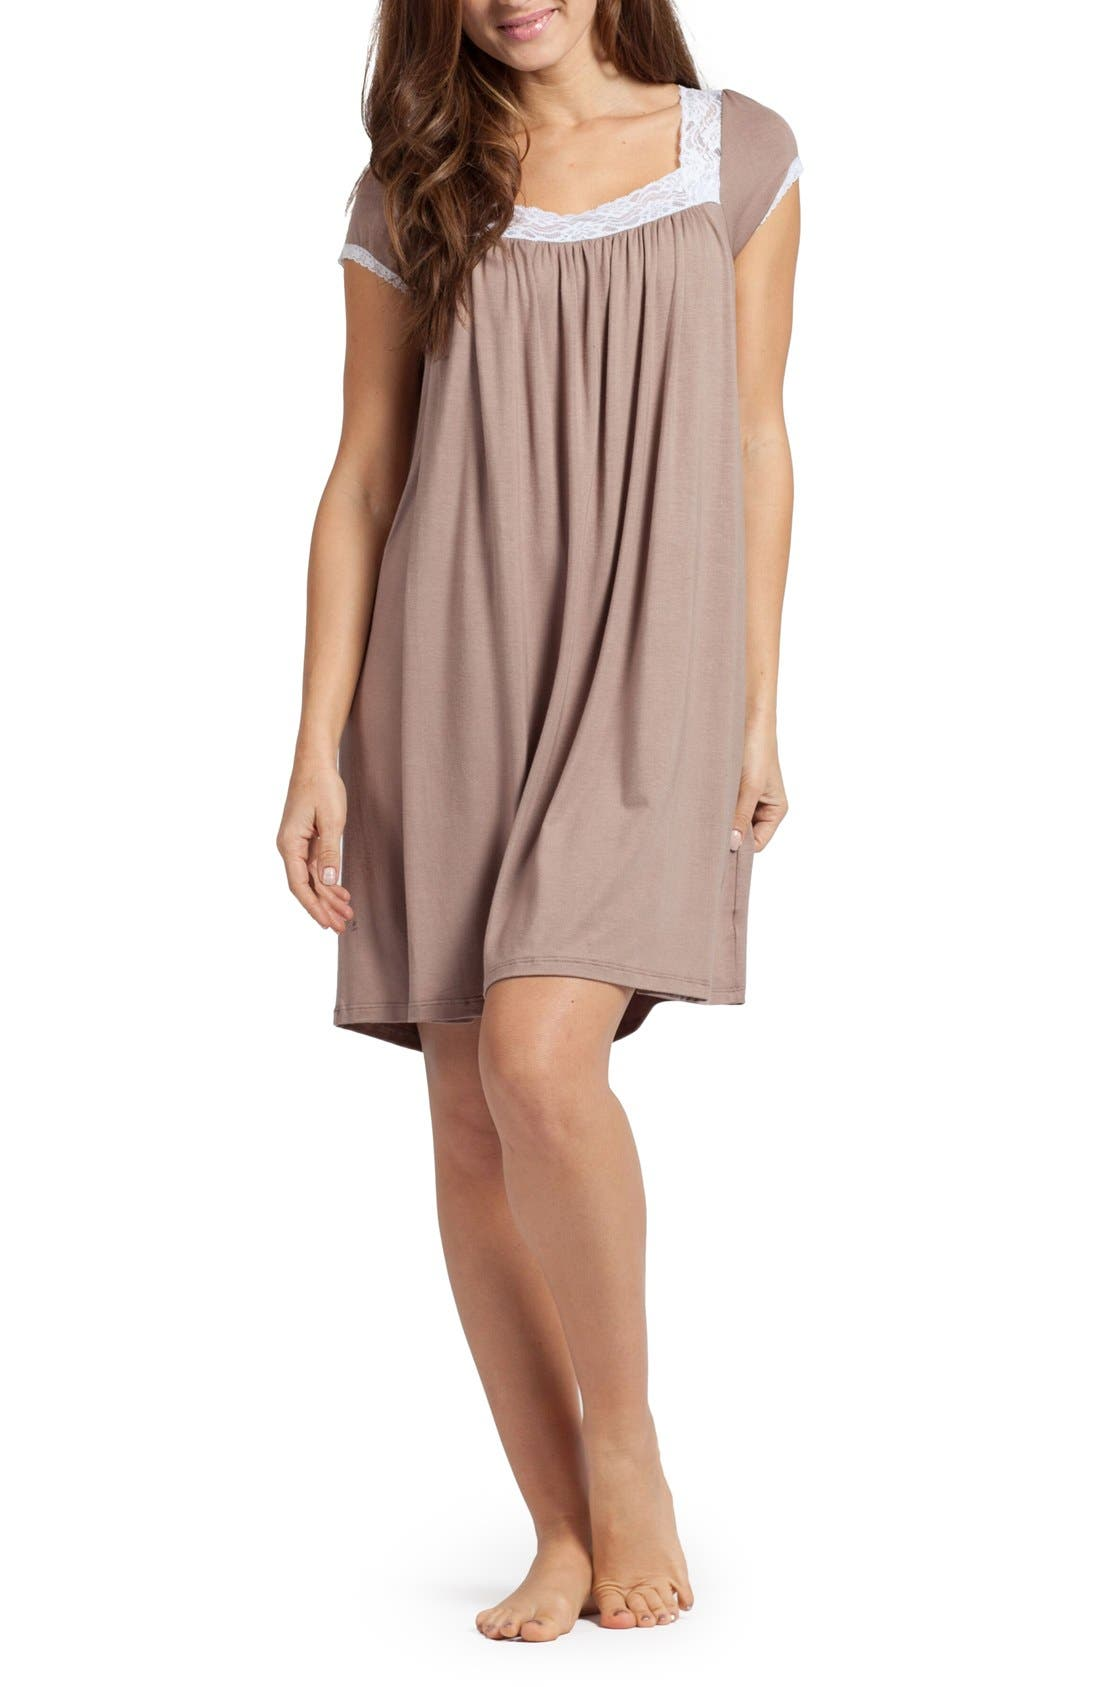 'The Lace' Maternity/Nursing Nightgown,                         Main,                         color, 210